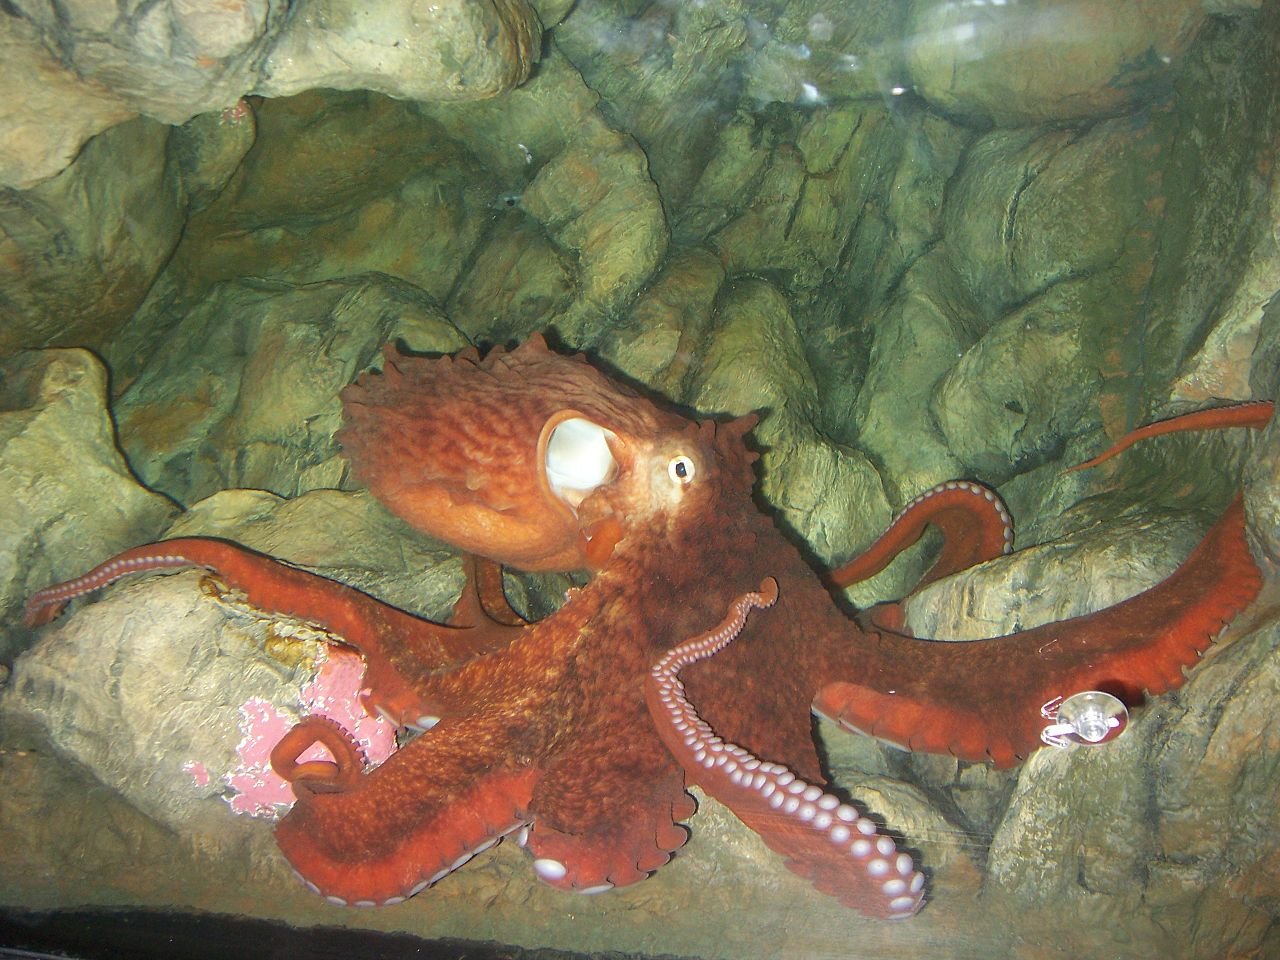 https://upload.wikimedia.org/wikipedia/commons/thumb/5/52/Enteroctopus_dofleini_in_aquarium_rotated.jpg/1280px-Enteroctopus_dofleini_in_aquarium_rotated.jpg